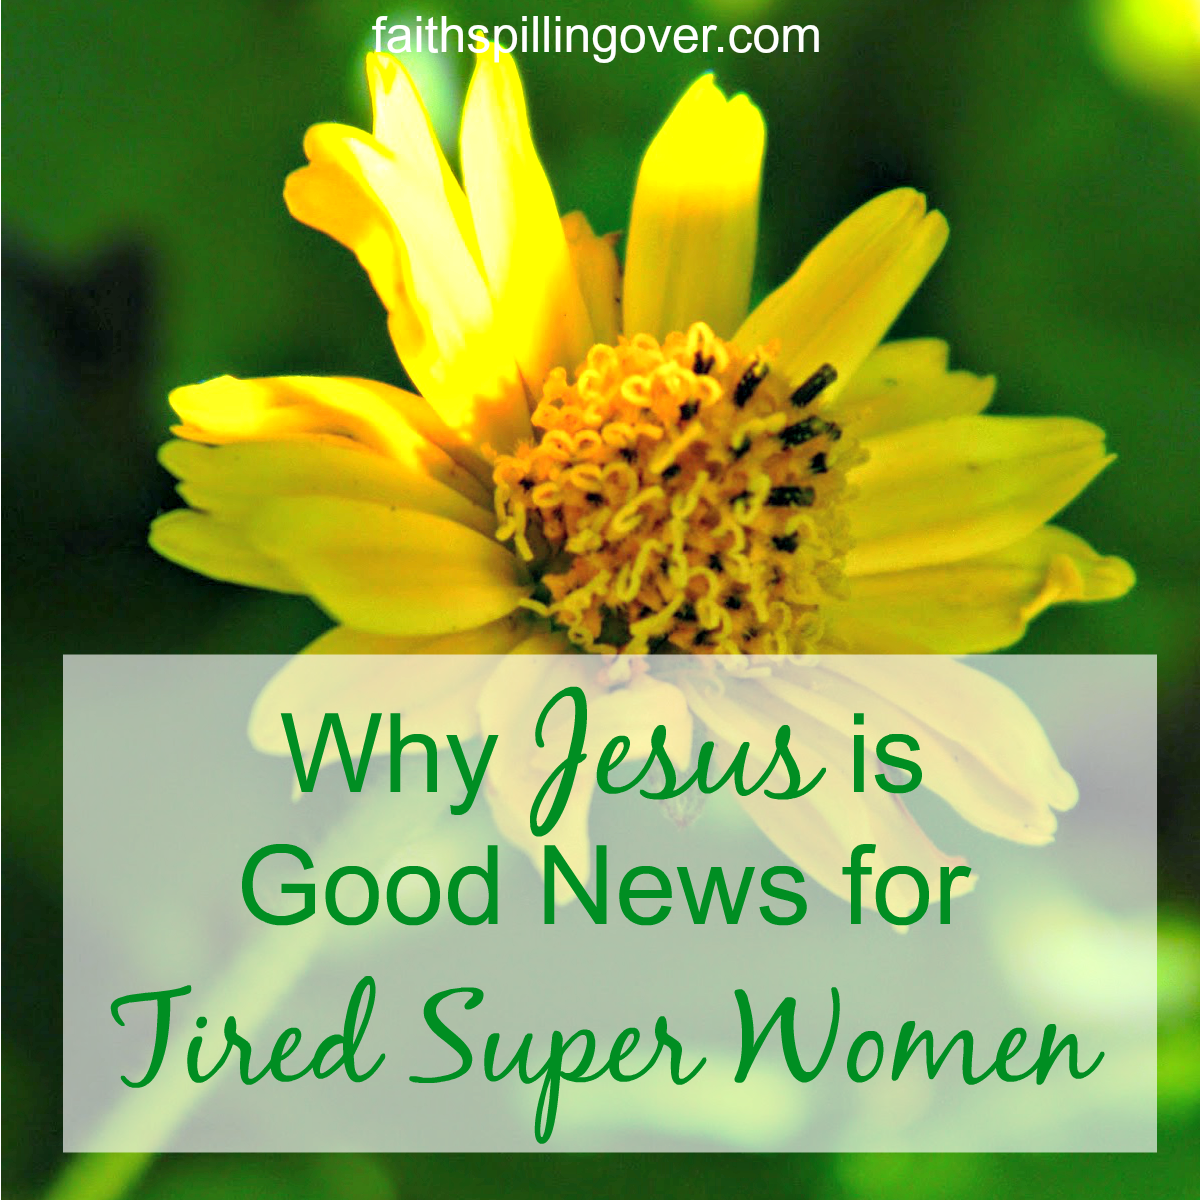 Jesus is good new for tired superwomen